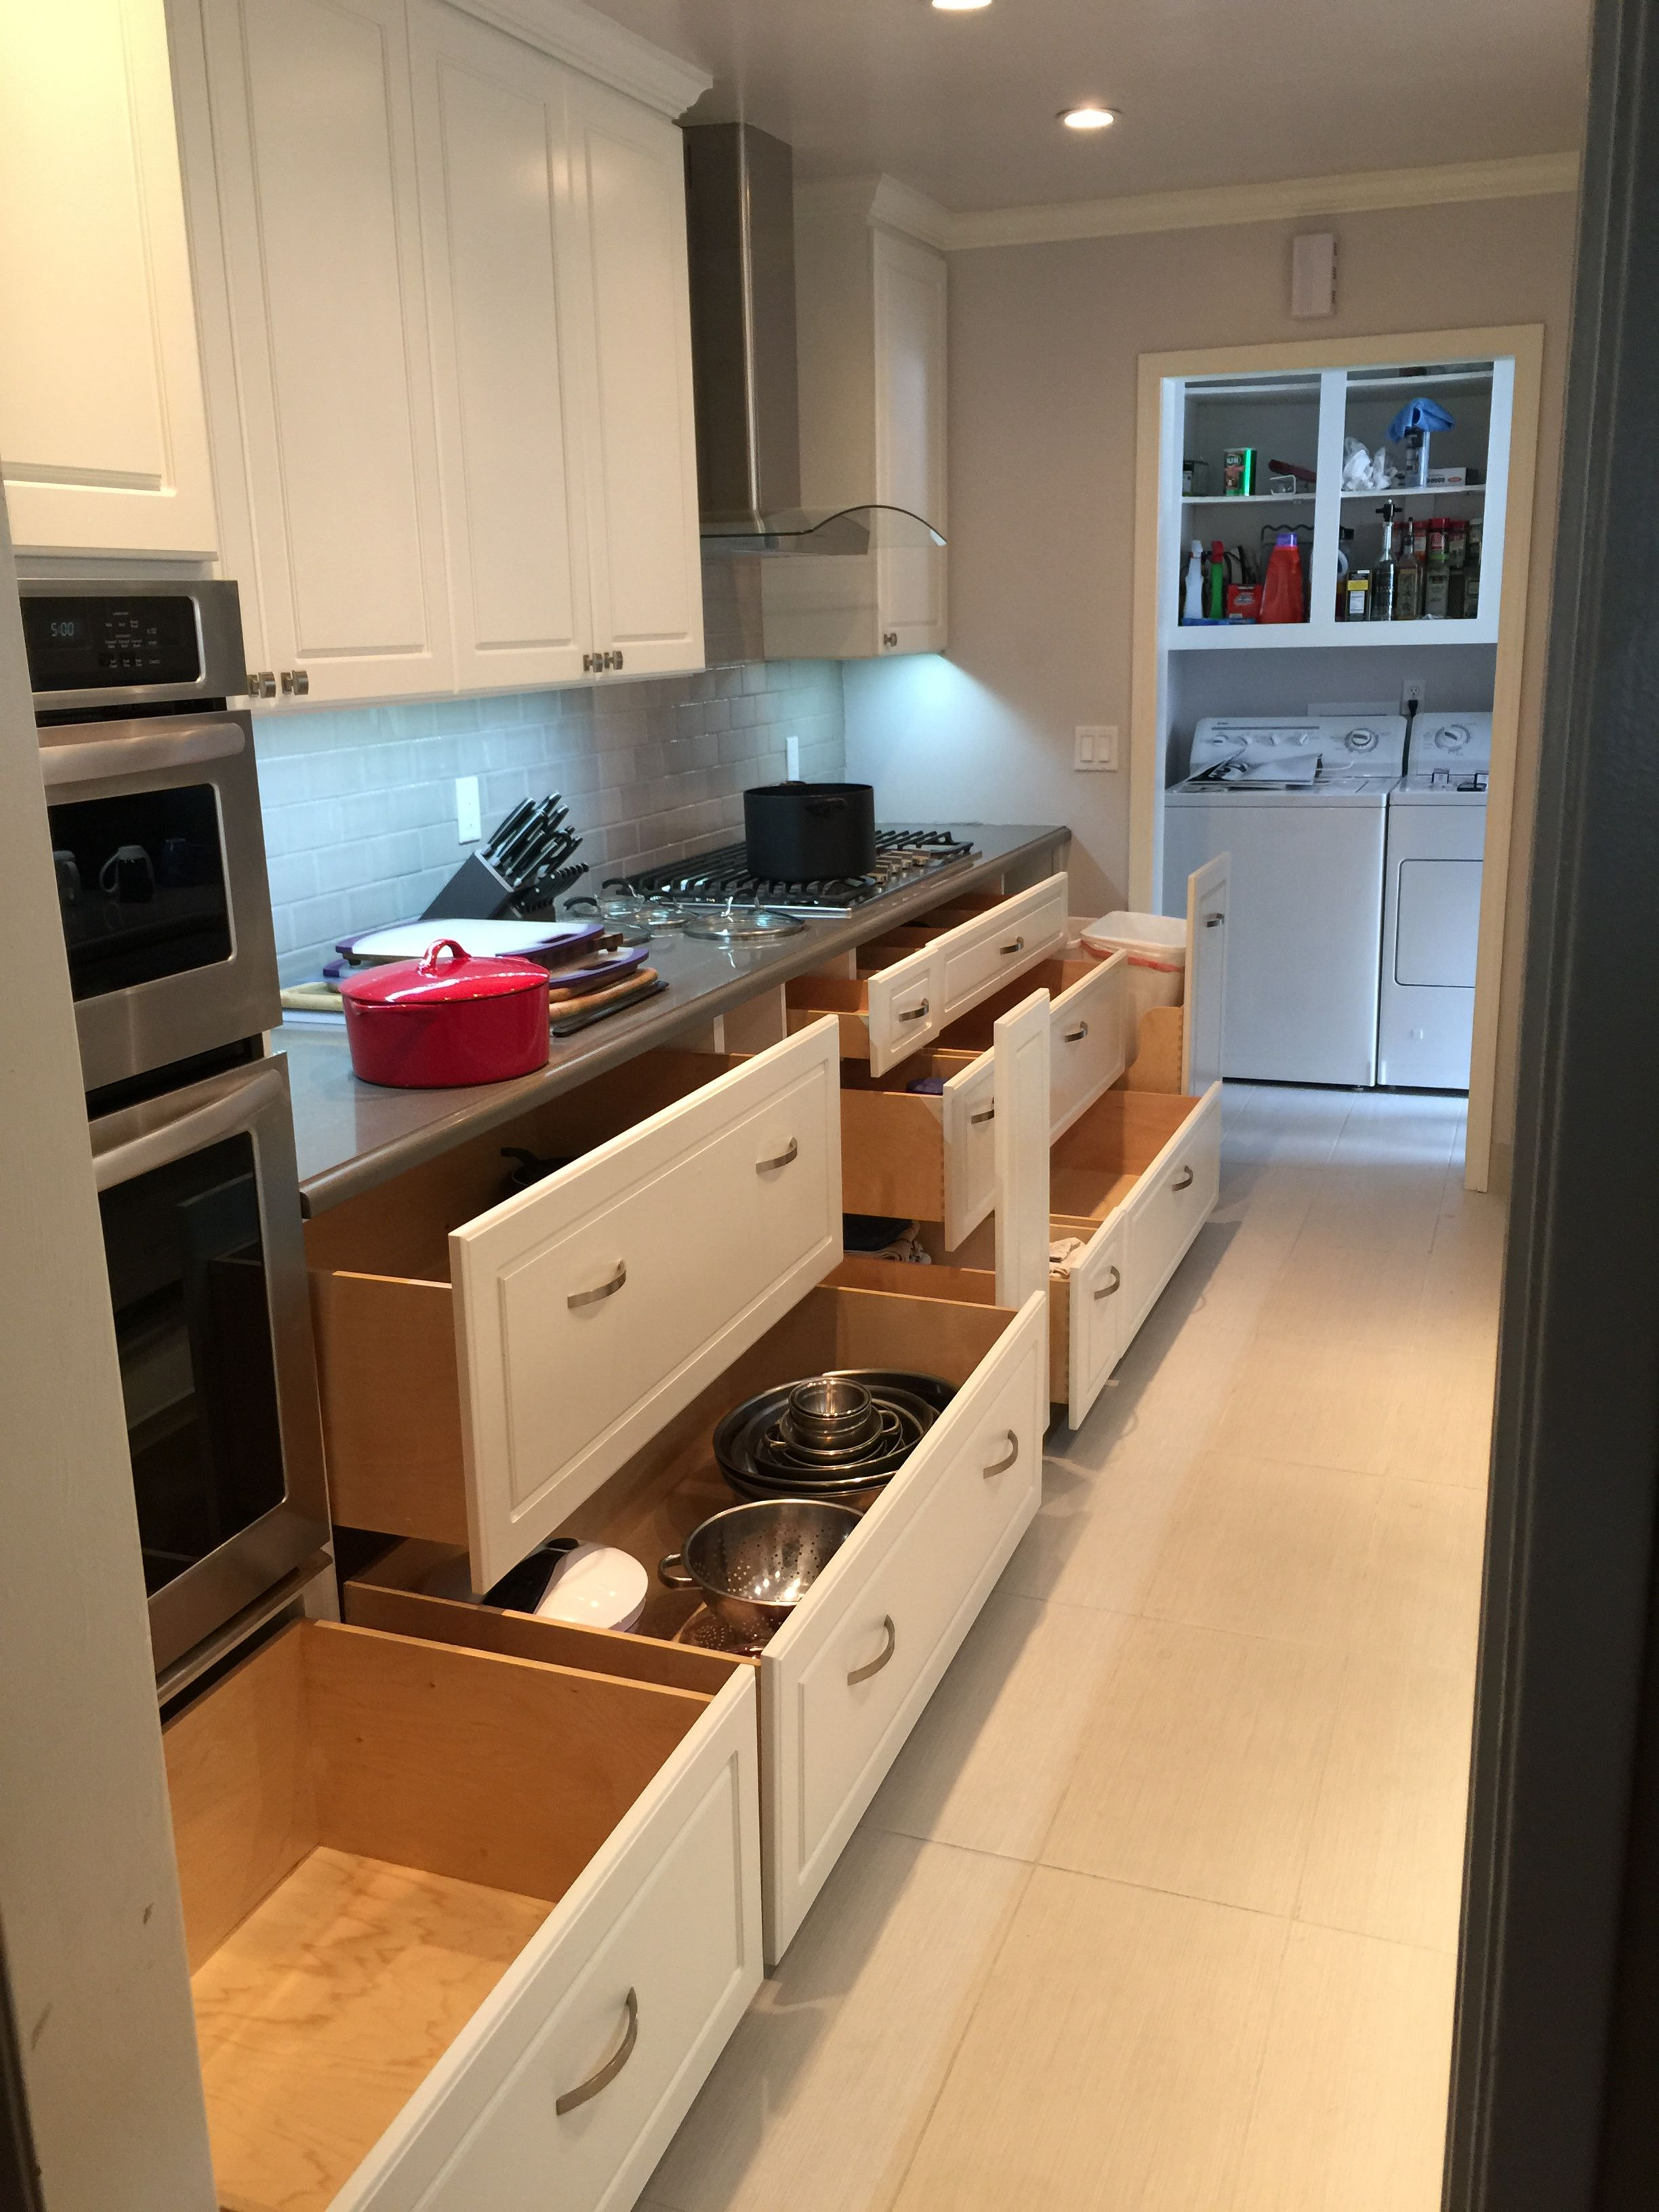 All Lower Drawers Opened Kitchen Kitchen Cabinets Home Decor